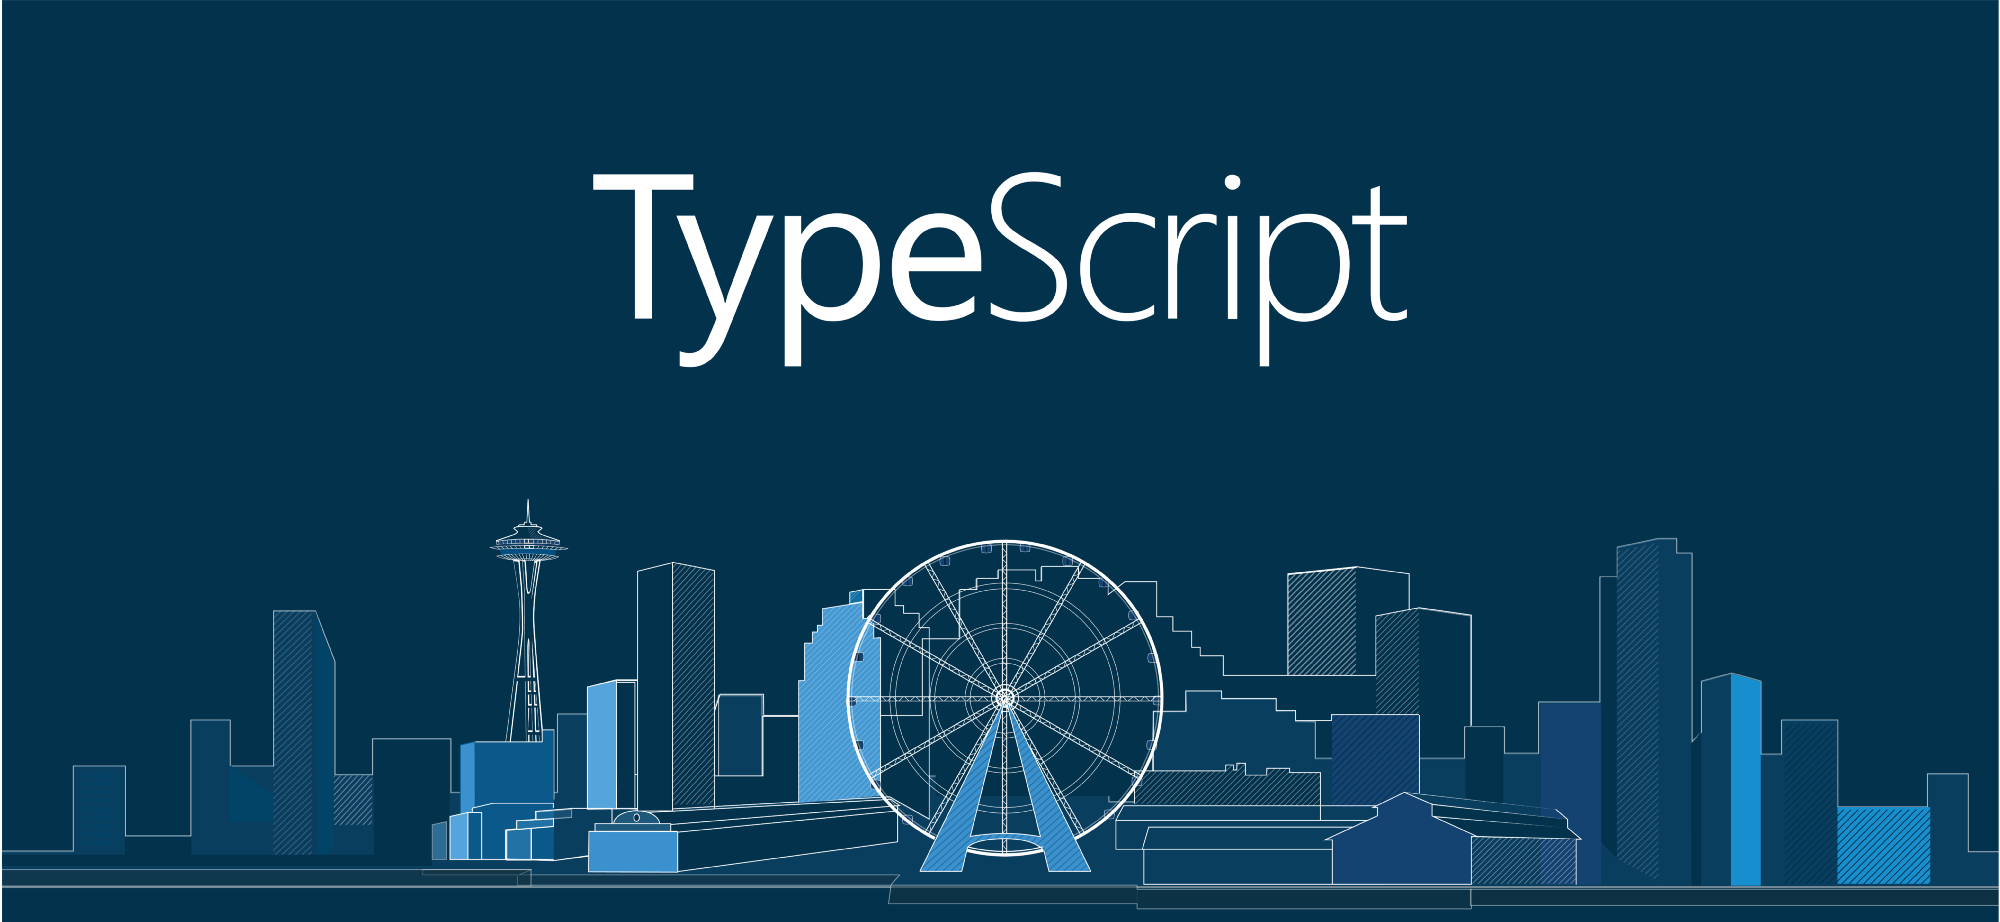 TypeScript: JavaScript made Easier and Simpler